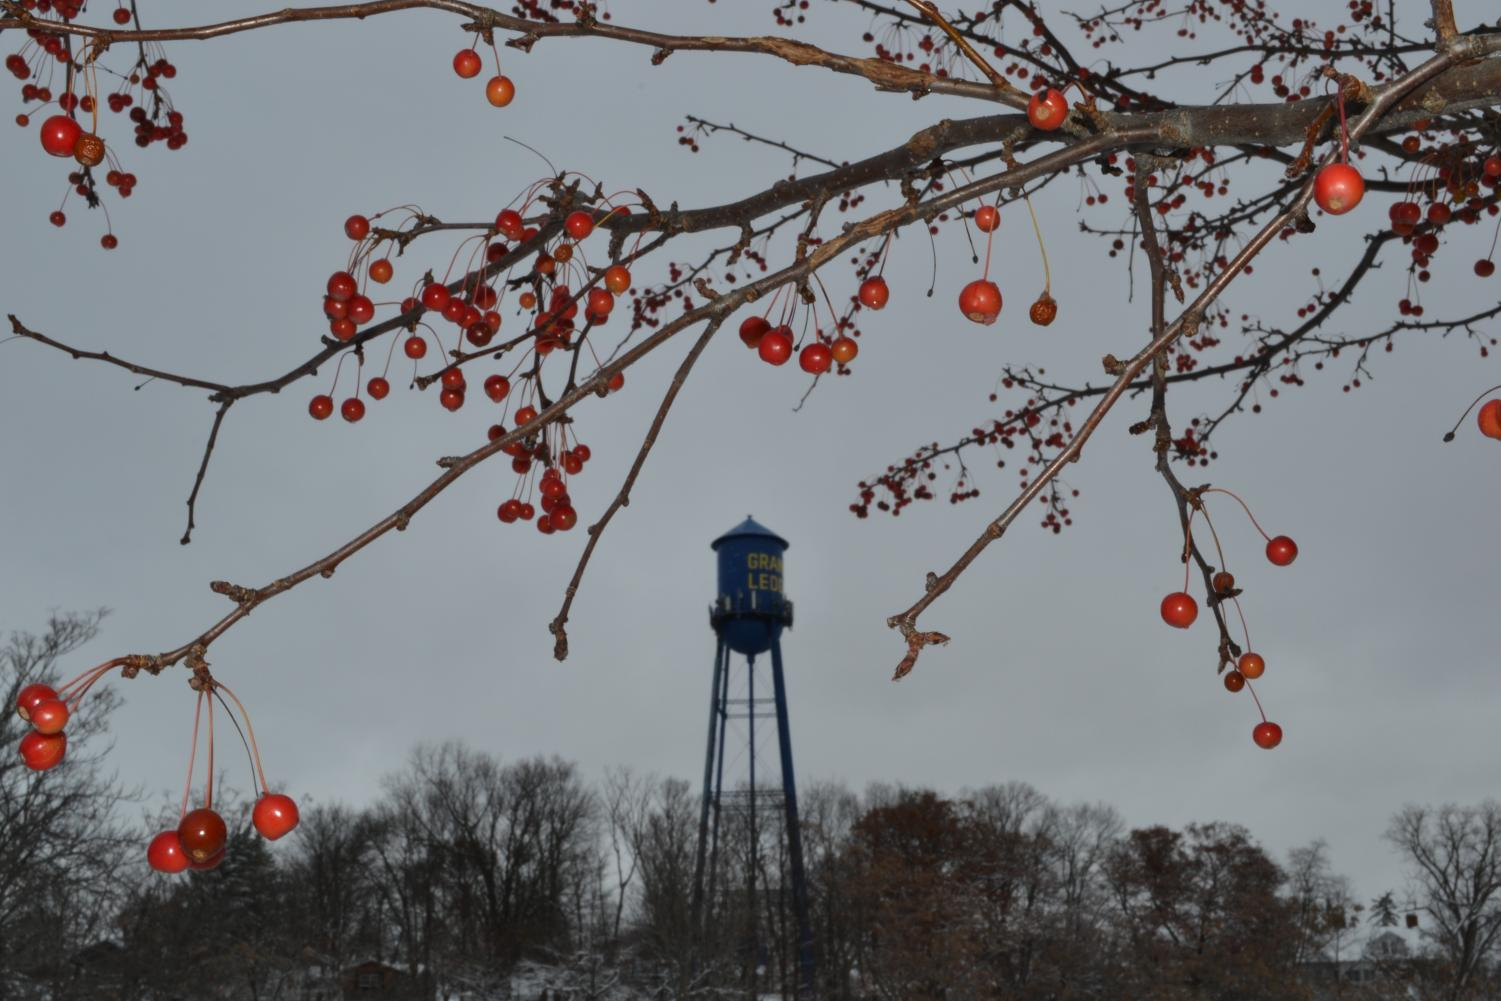 The GL water tower stands in the perfect place for beautiful photos year round. The water tower was one of two in the city.